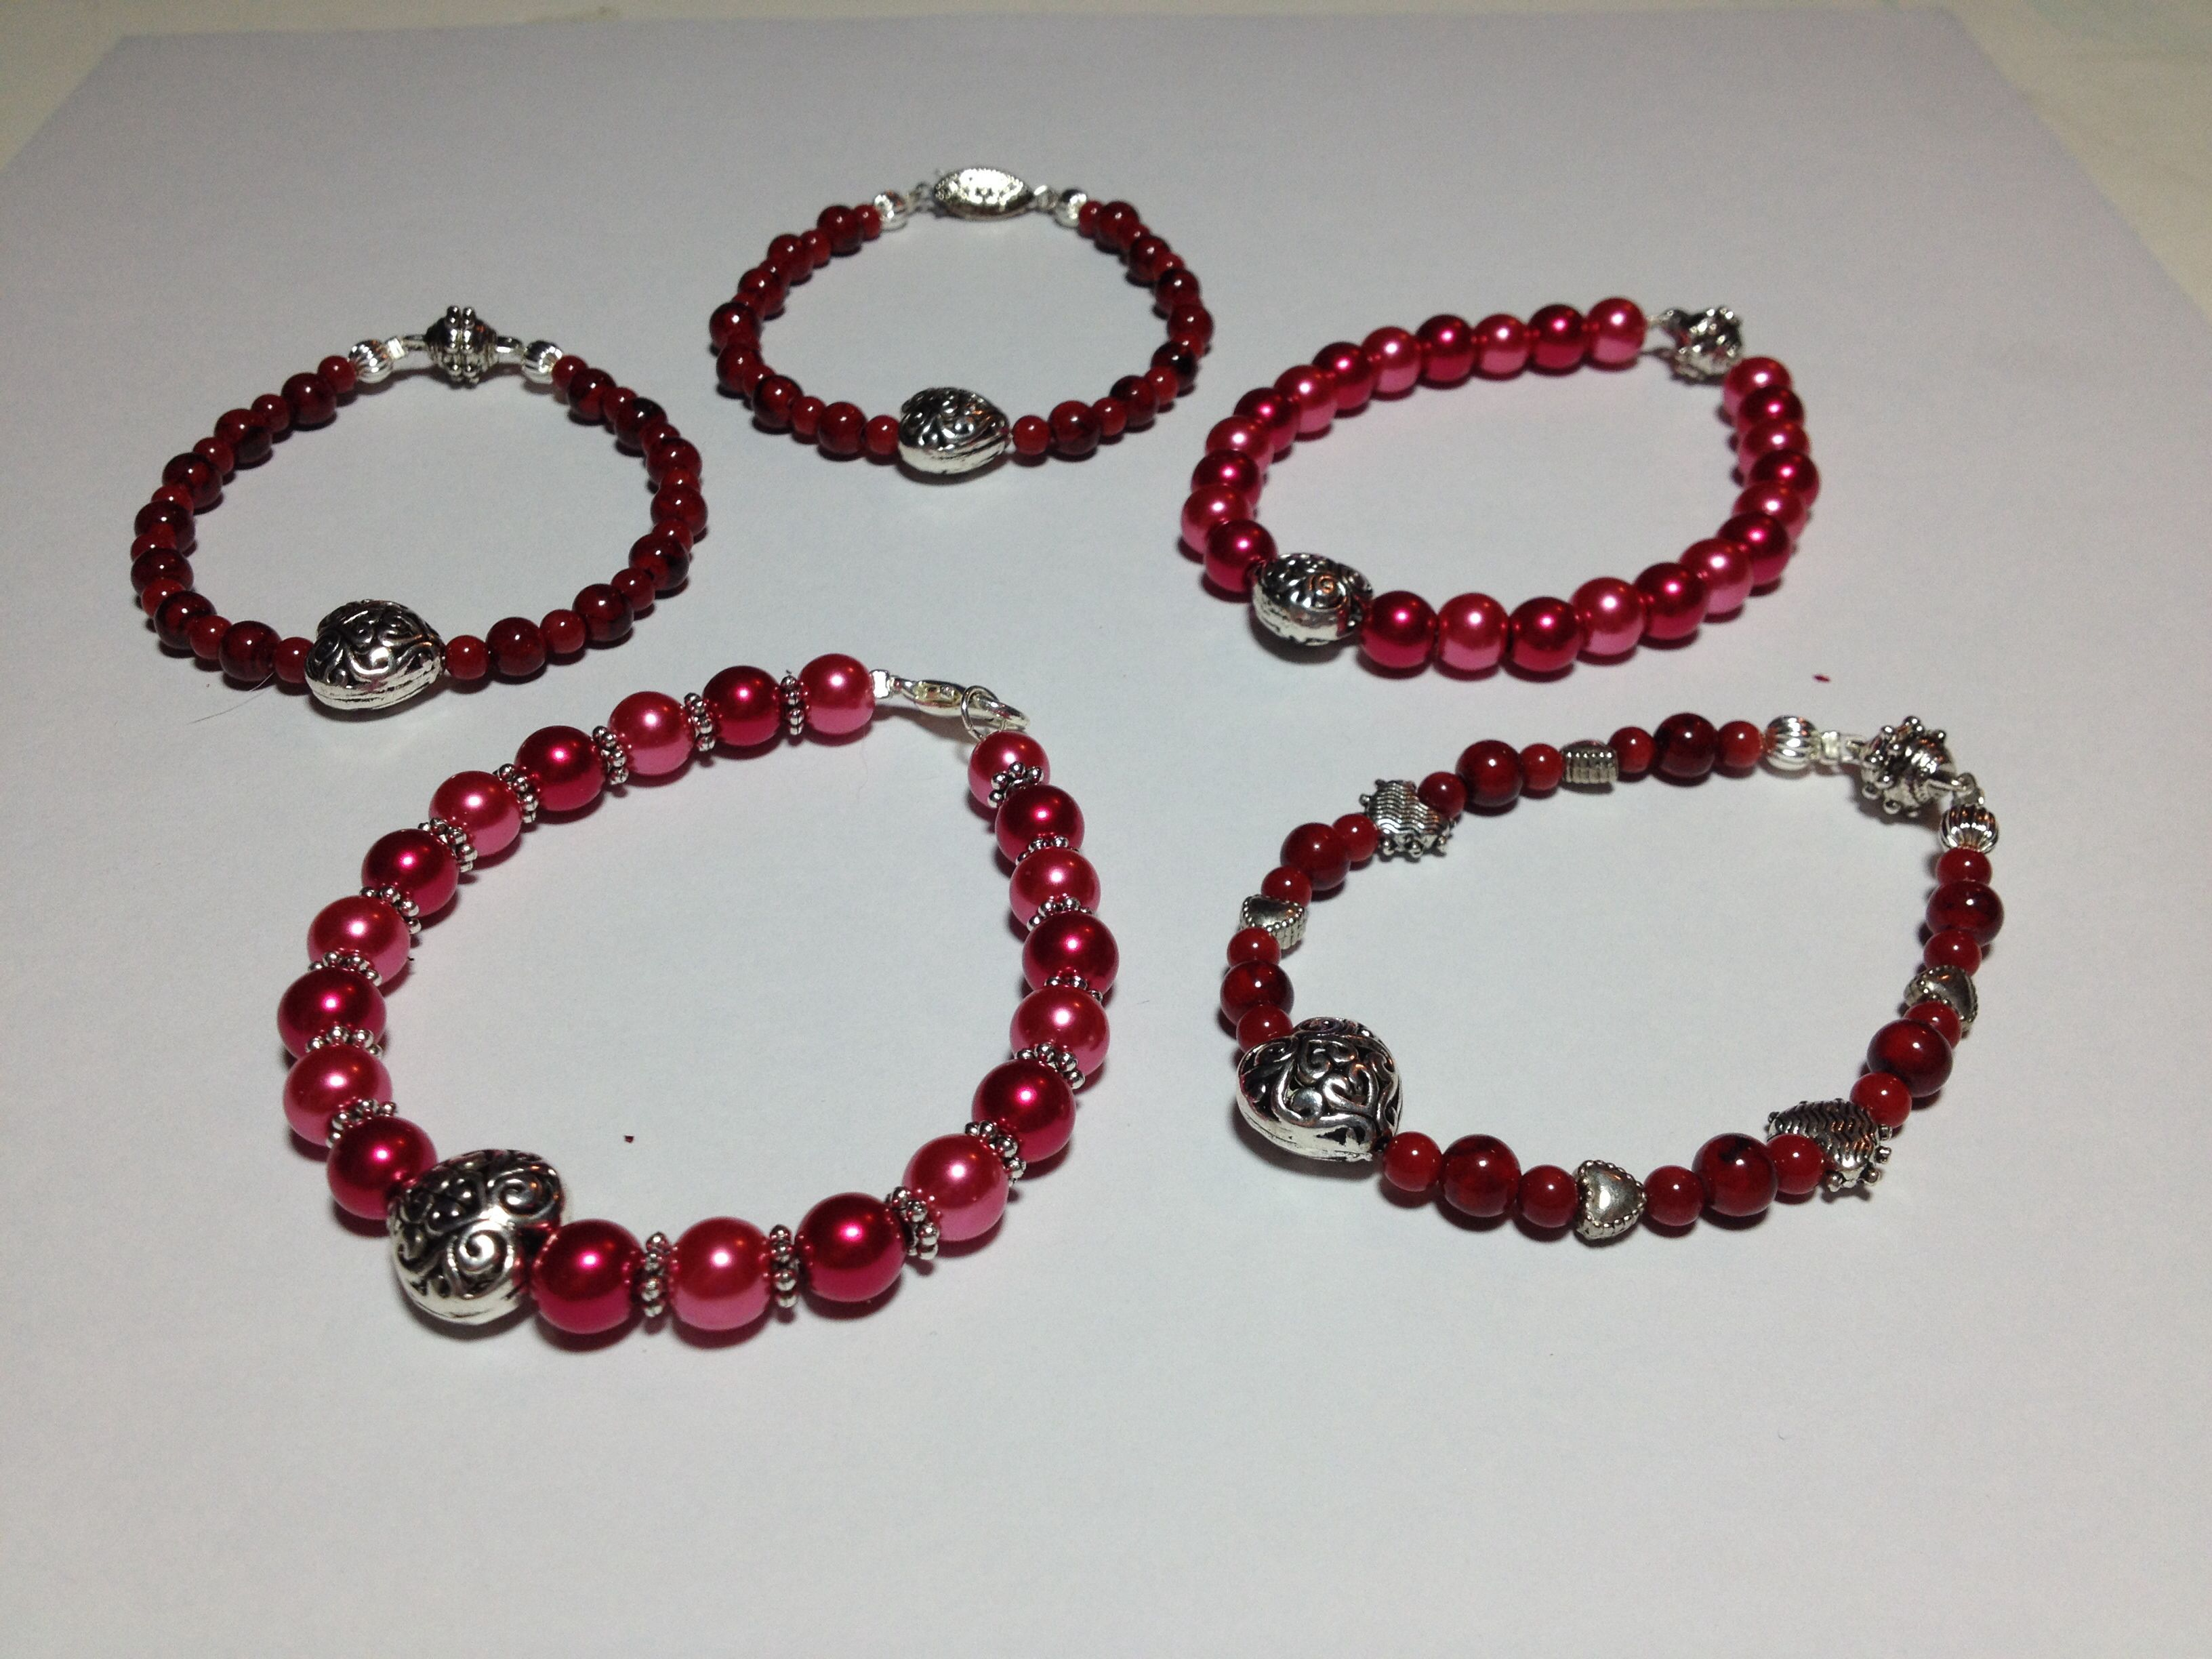 Valentines Day Bracelets  for sale $5 each made by Anne Akins visit my Facebook page Anne Akins to purchase